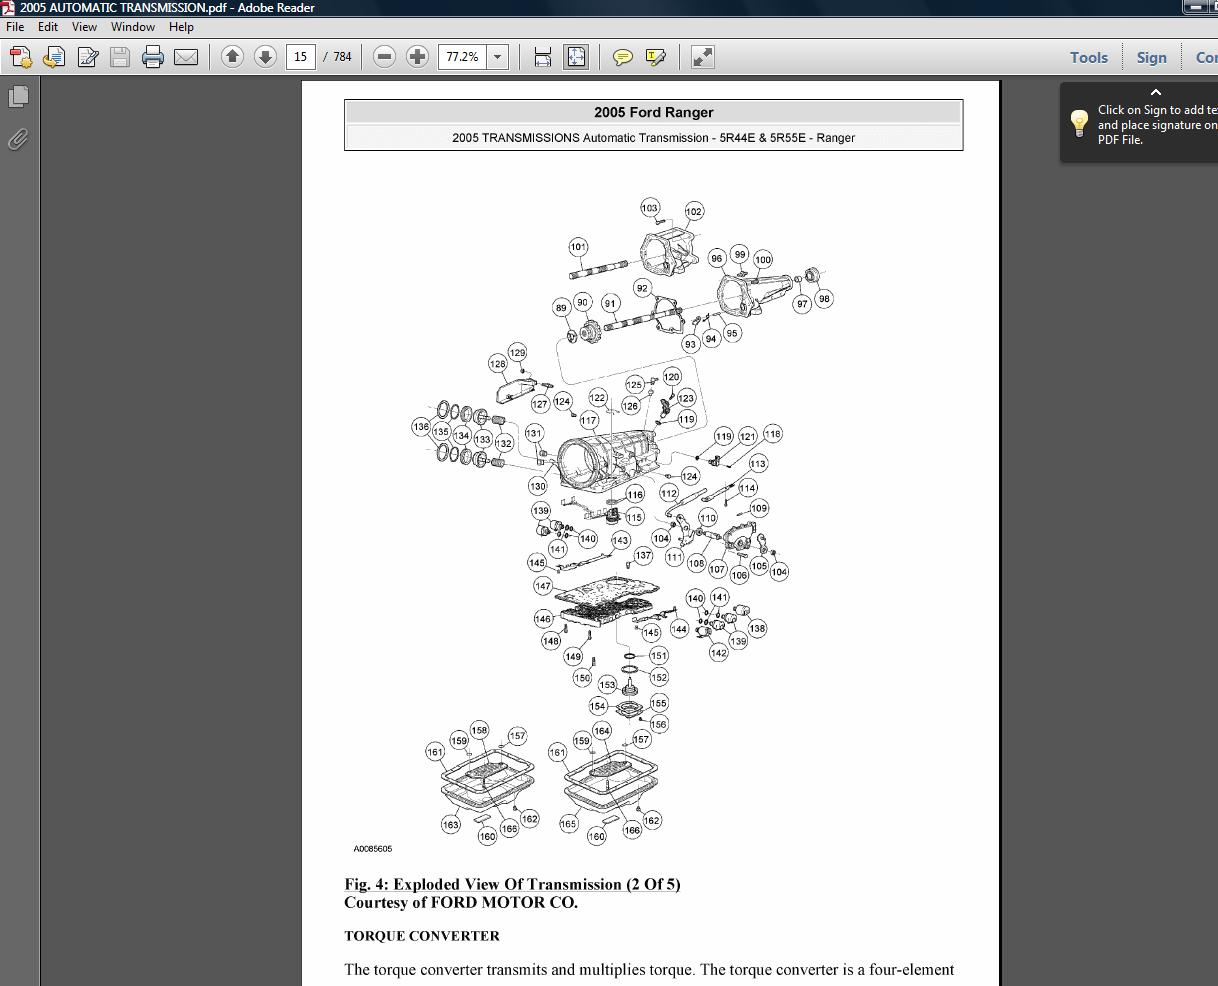 small resolution of 2001 02 03 04 05 06 07 08 5r44e 5r55e ford ranger automatic transmission pdf manual download